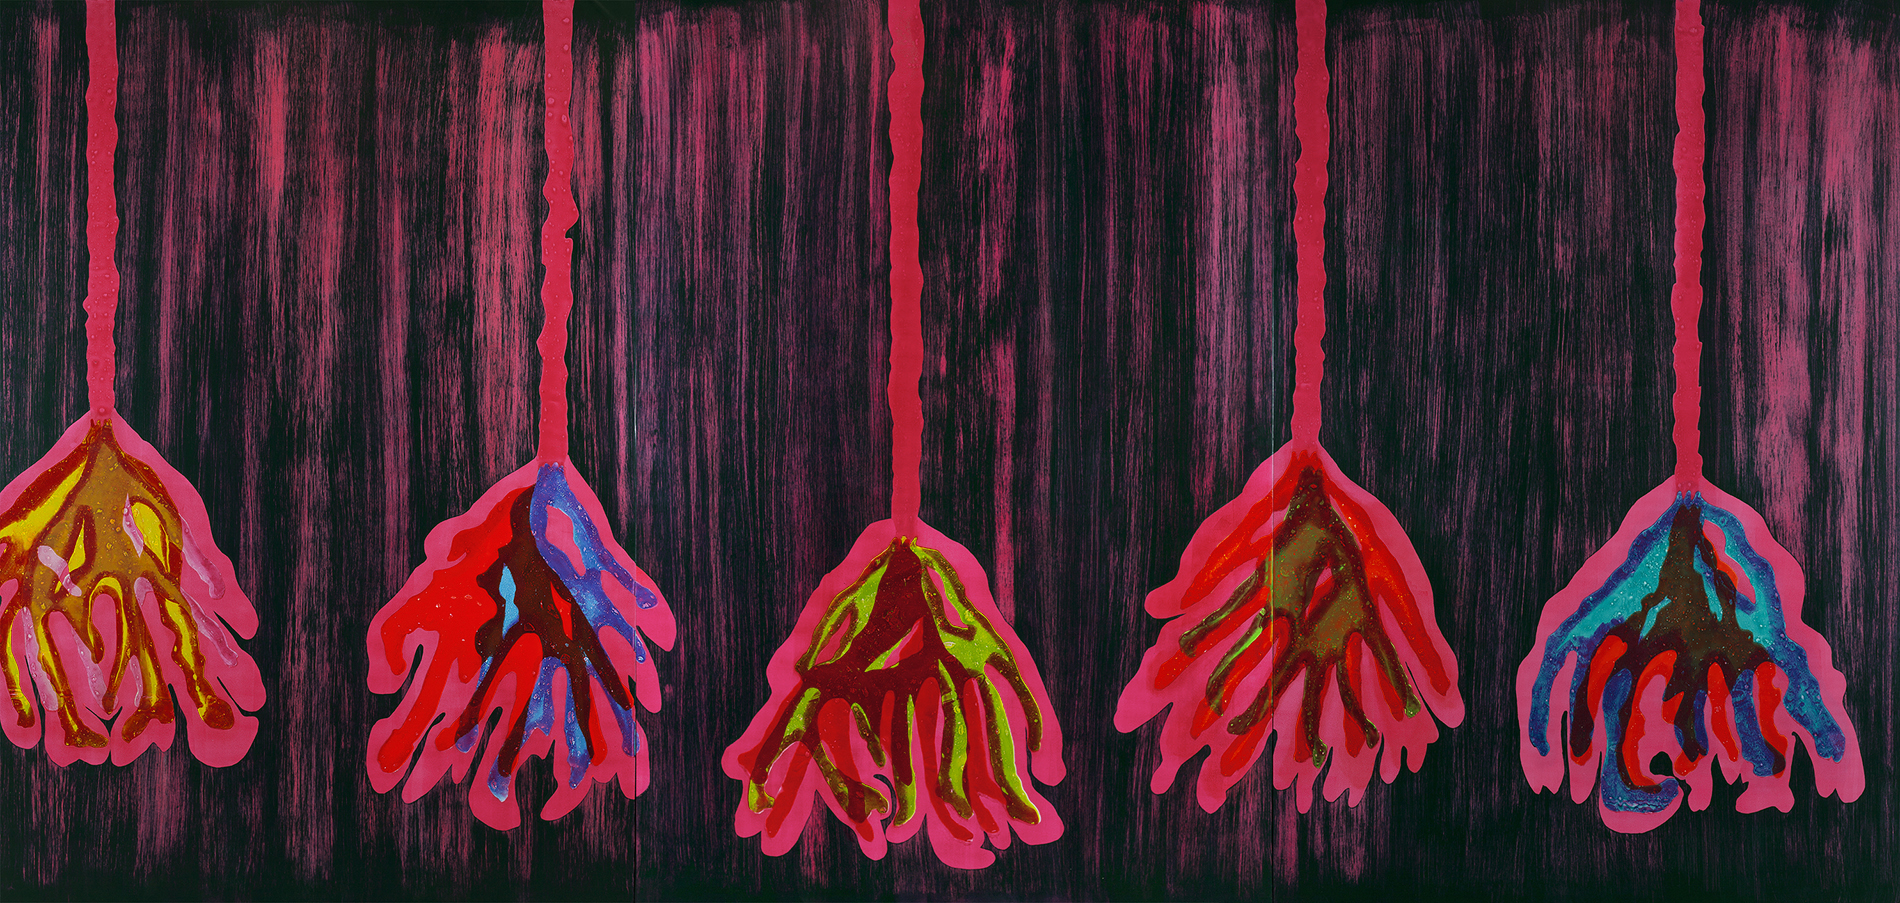 KISSED BY NIGHTSHADE 2012 Oil on canvas 112 x 231 inches